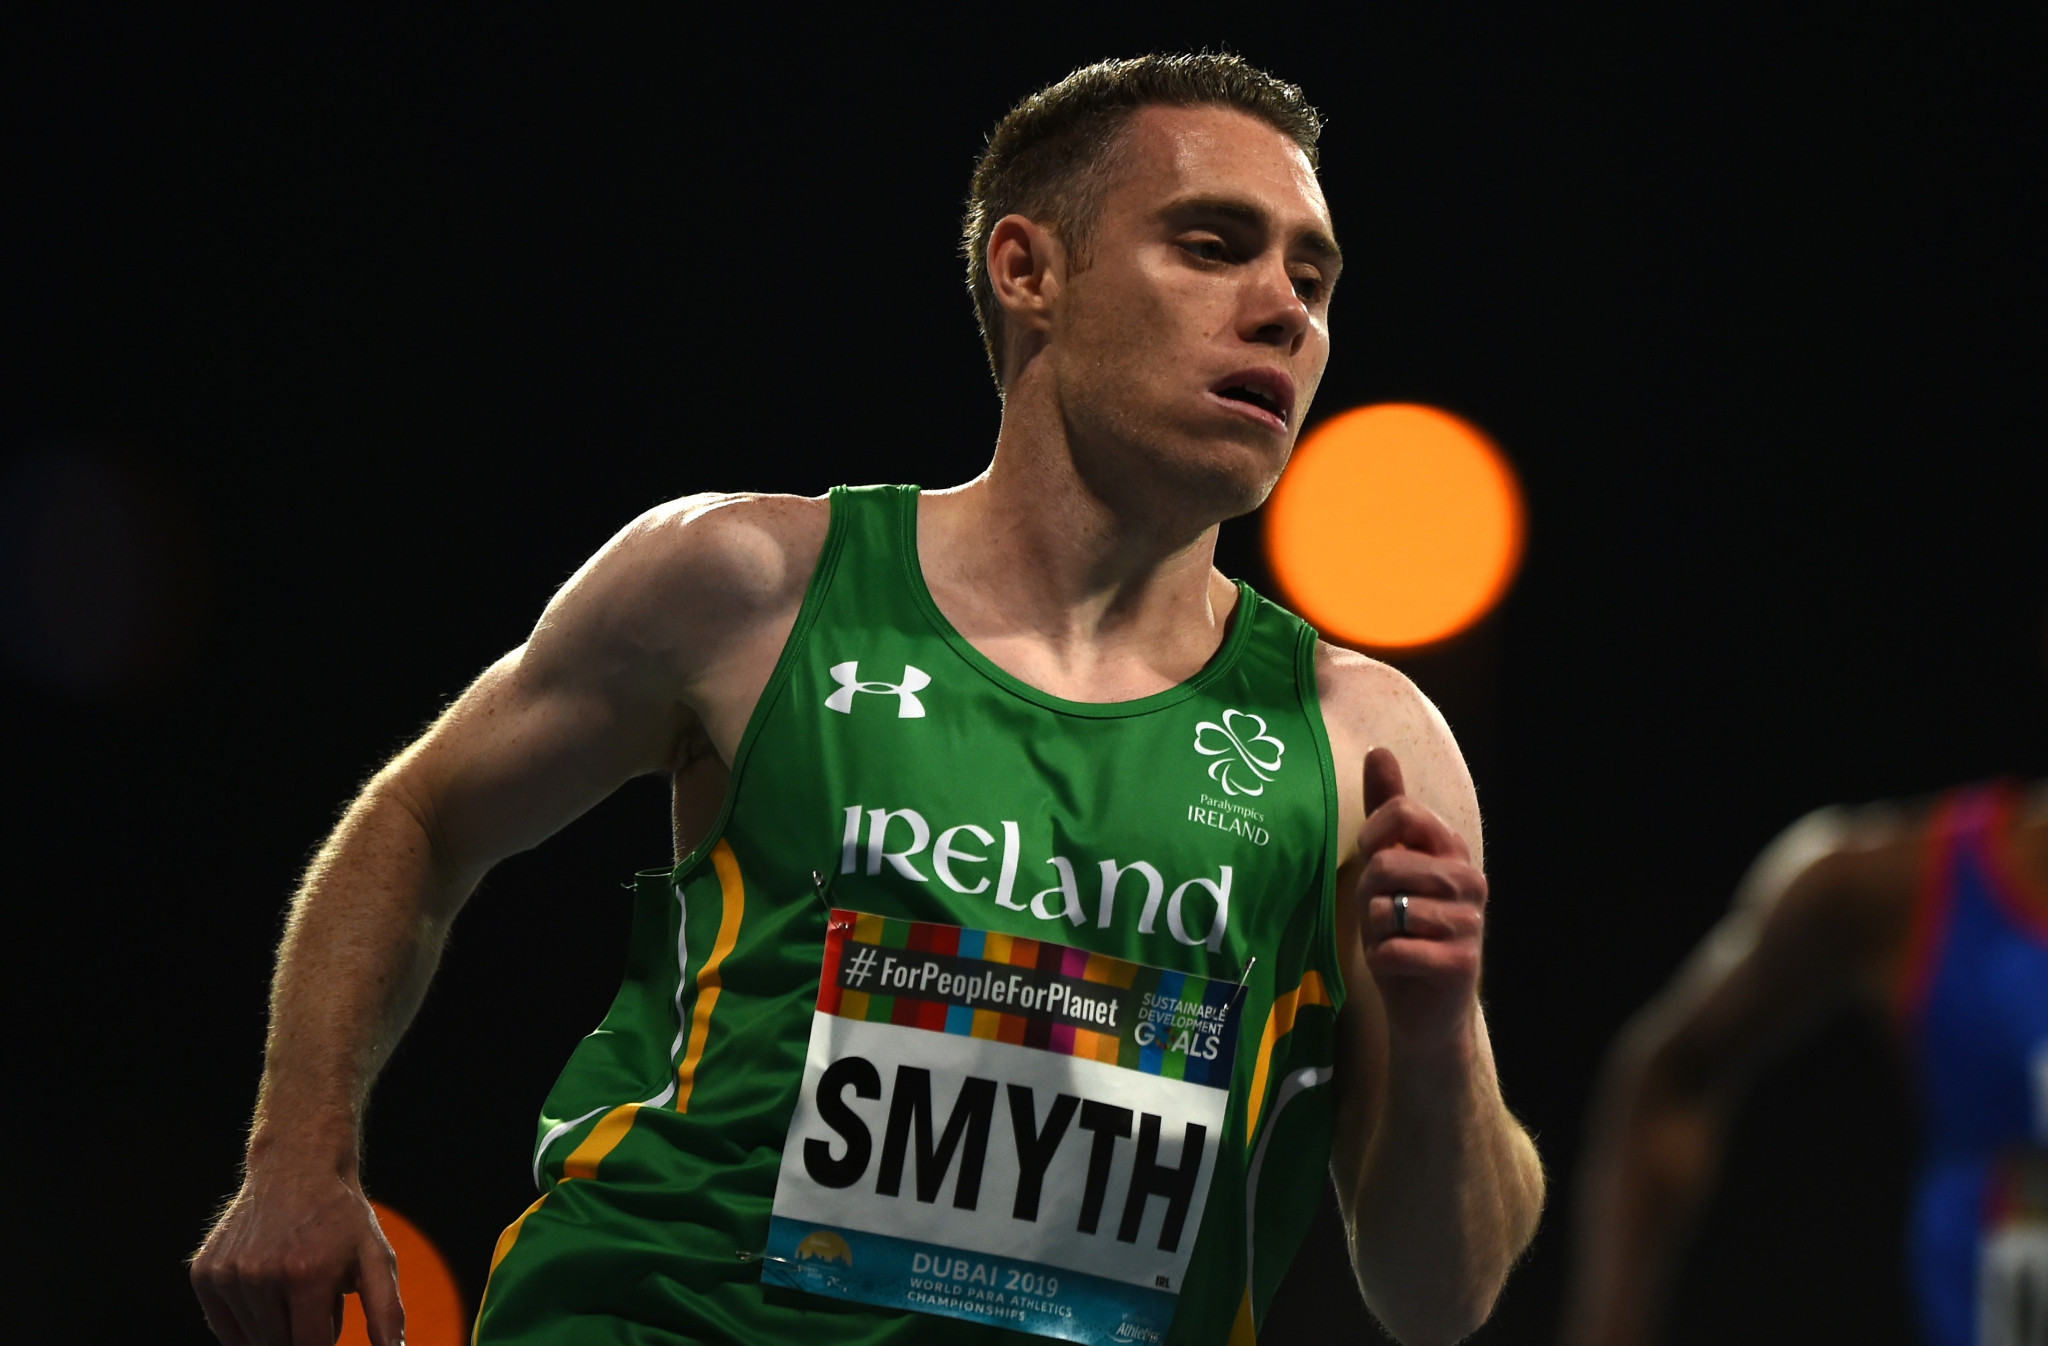 Irish sprinter Smyth says ambitions not affected by postponement of Tokyo 2020 Paralympics